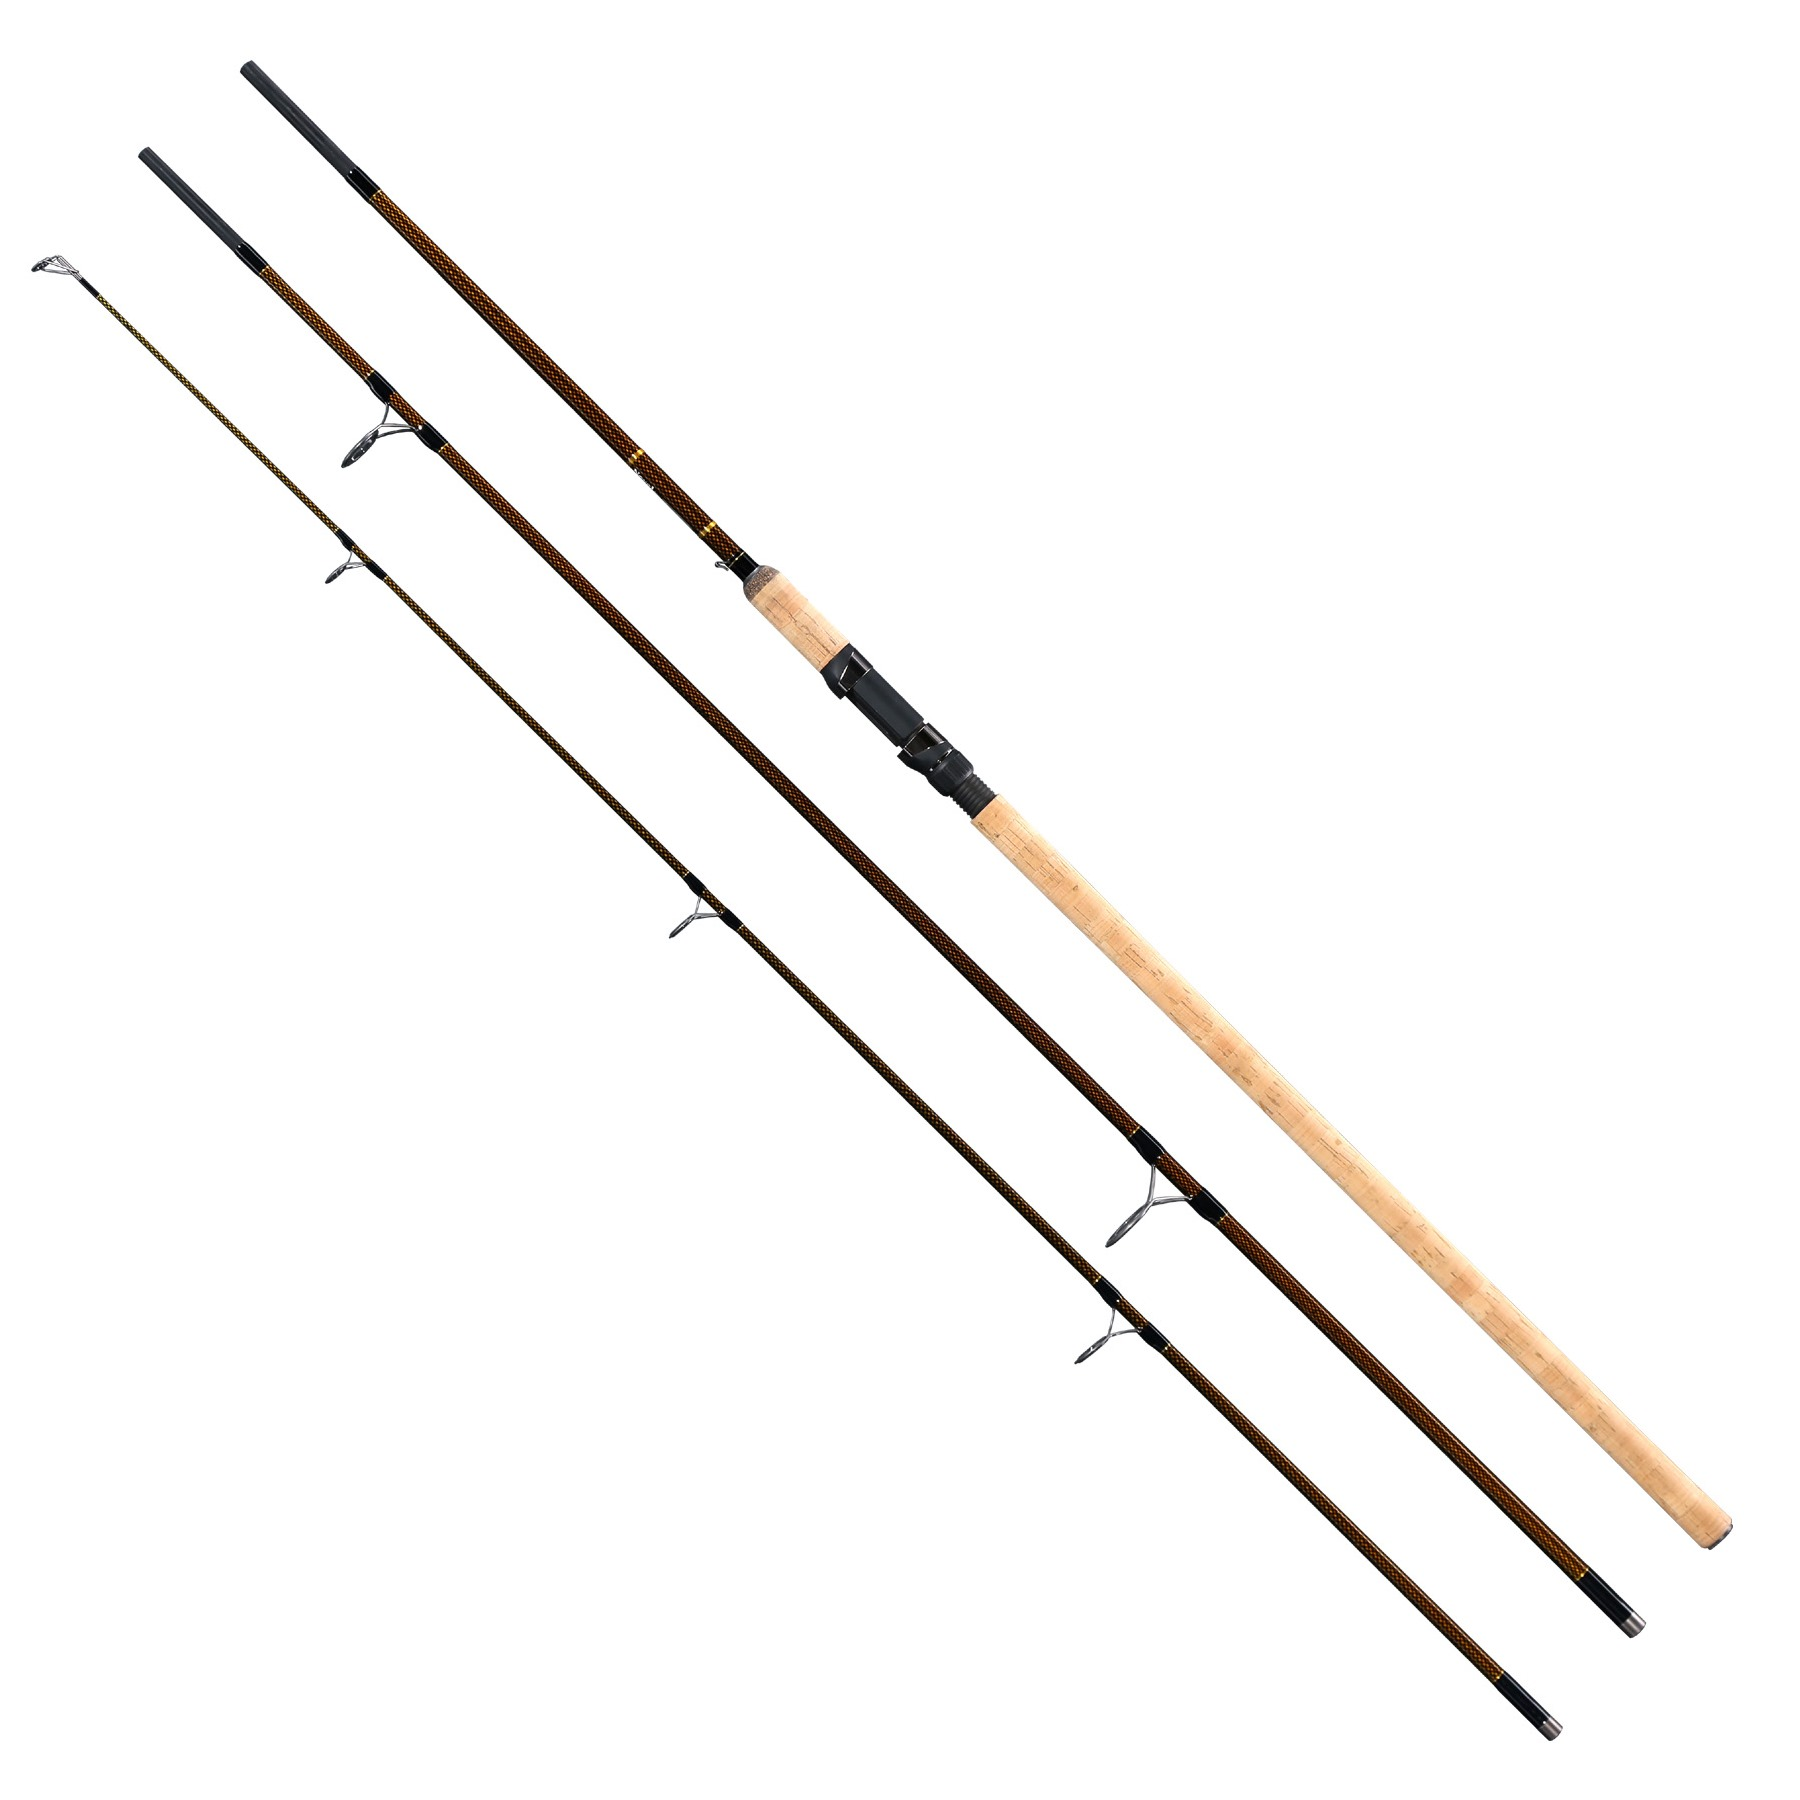 Prut NovellCarp 12ft, 3.00lb 3pc Cork